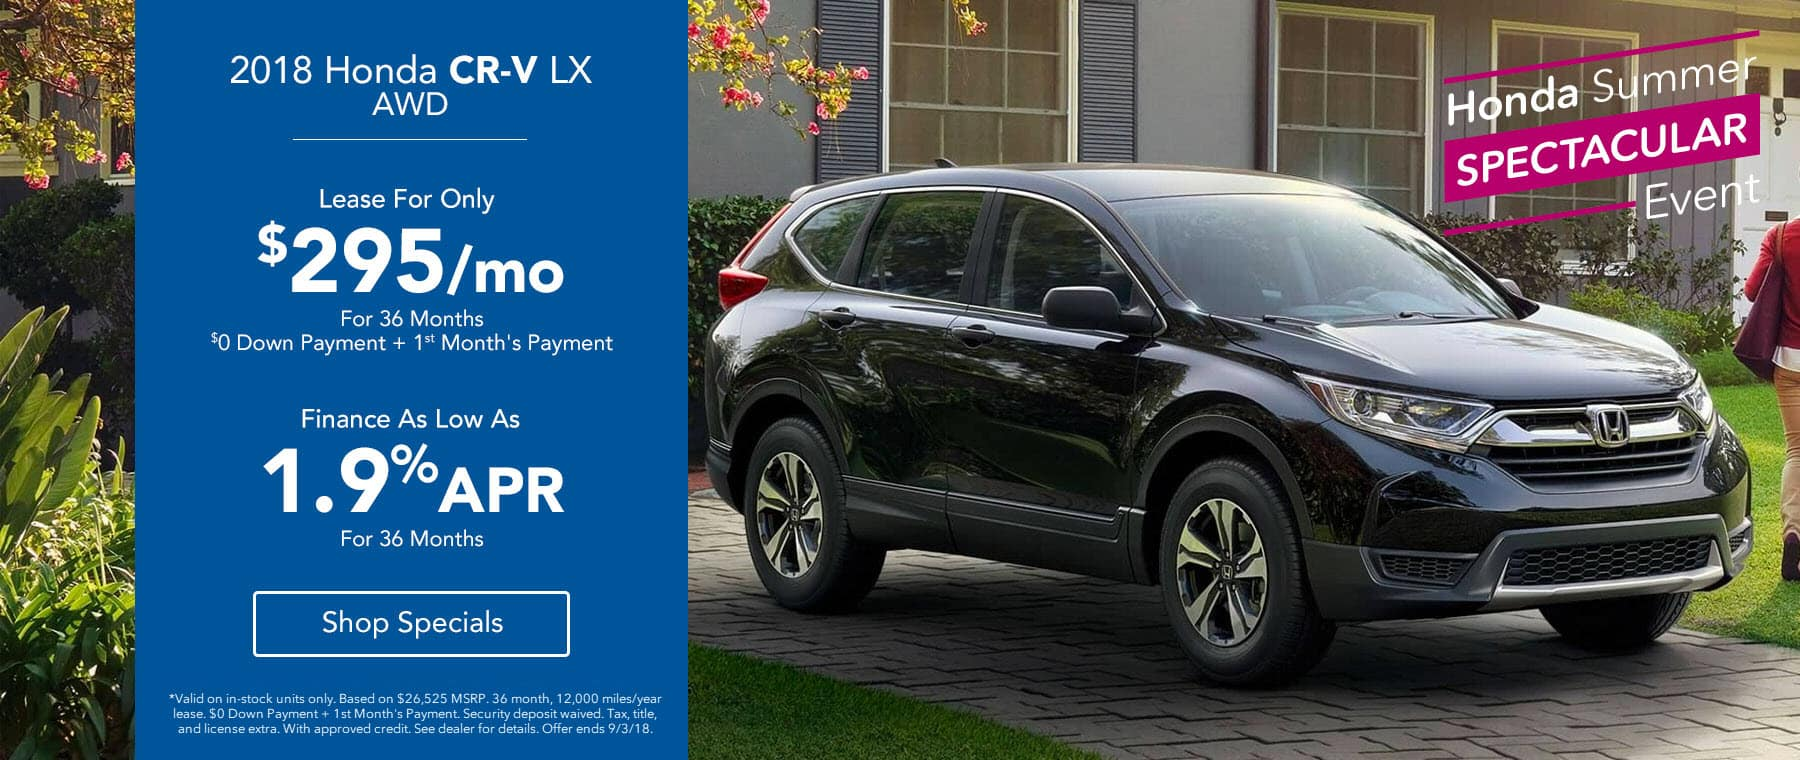 2018 Honda CR-V AWD Lease for $295 for 36 Months